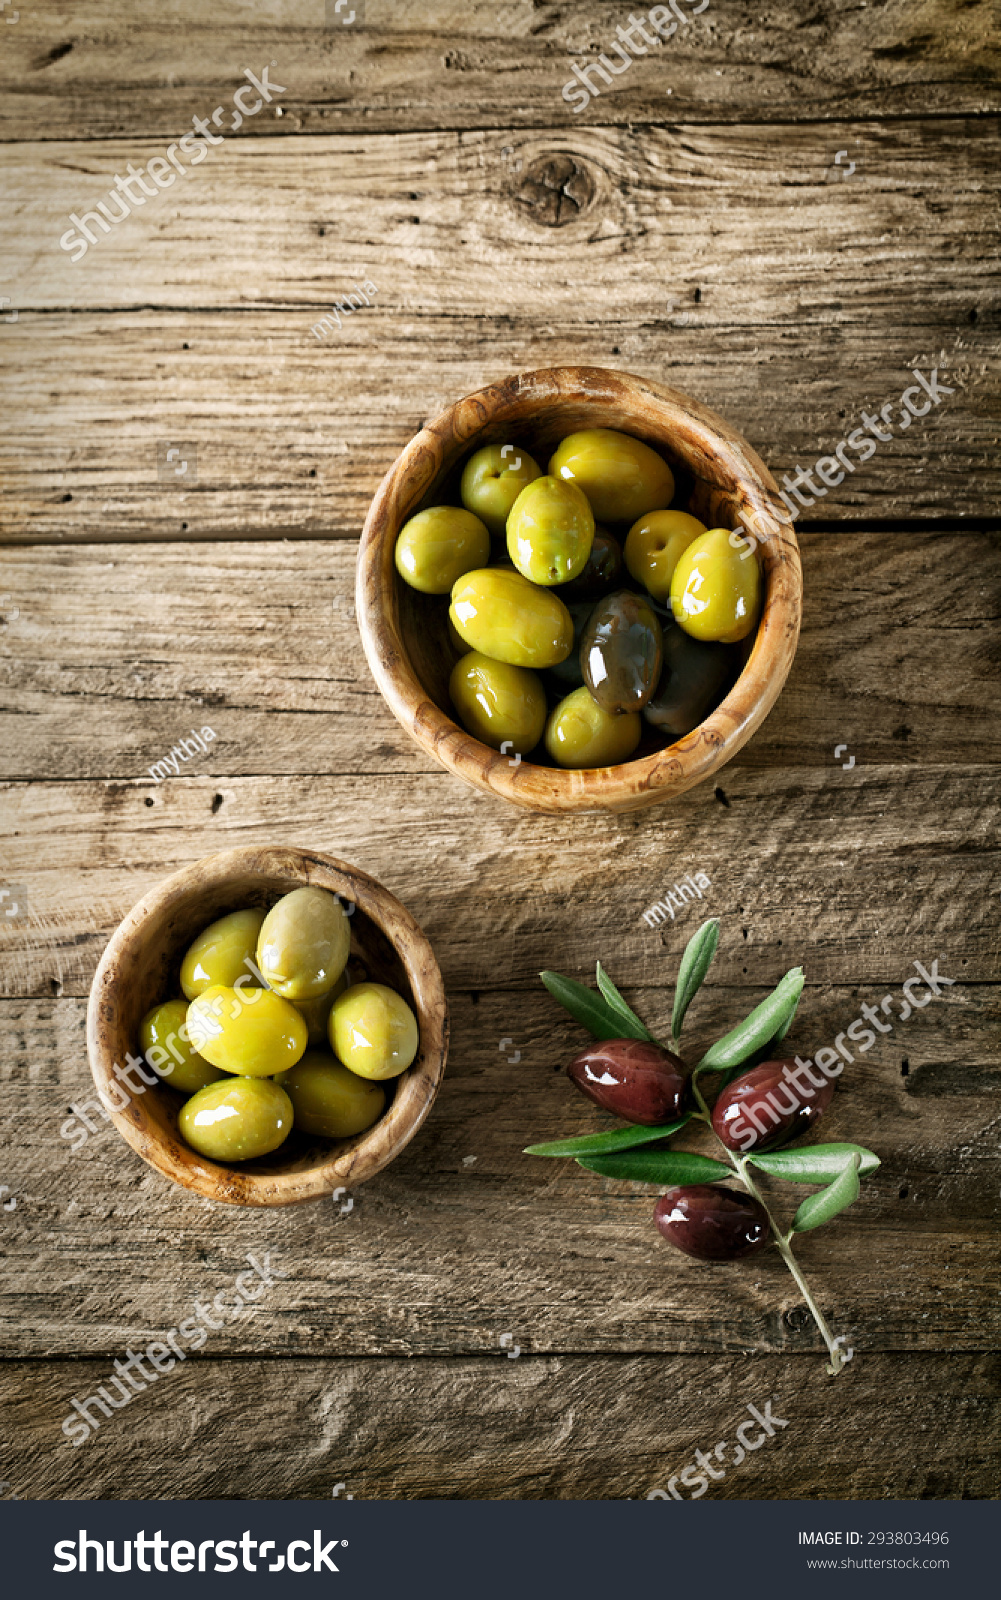 olives on old wood Wooden table with olives and olive oil